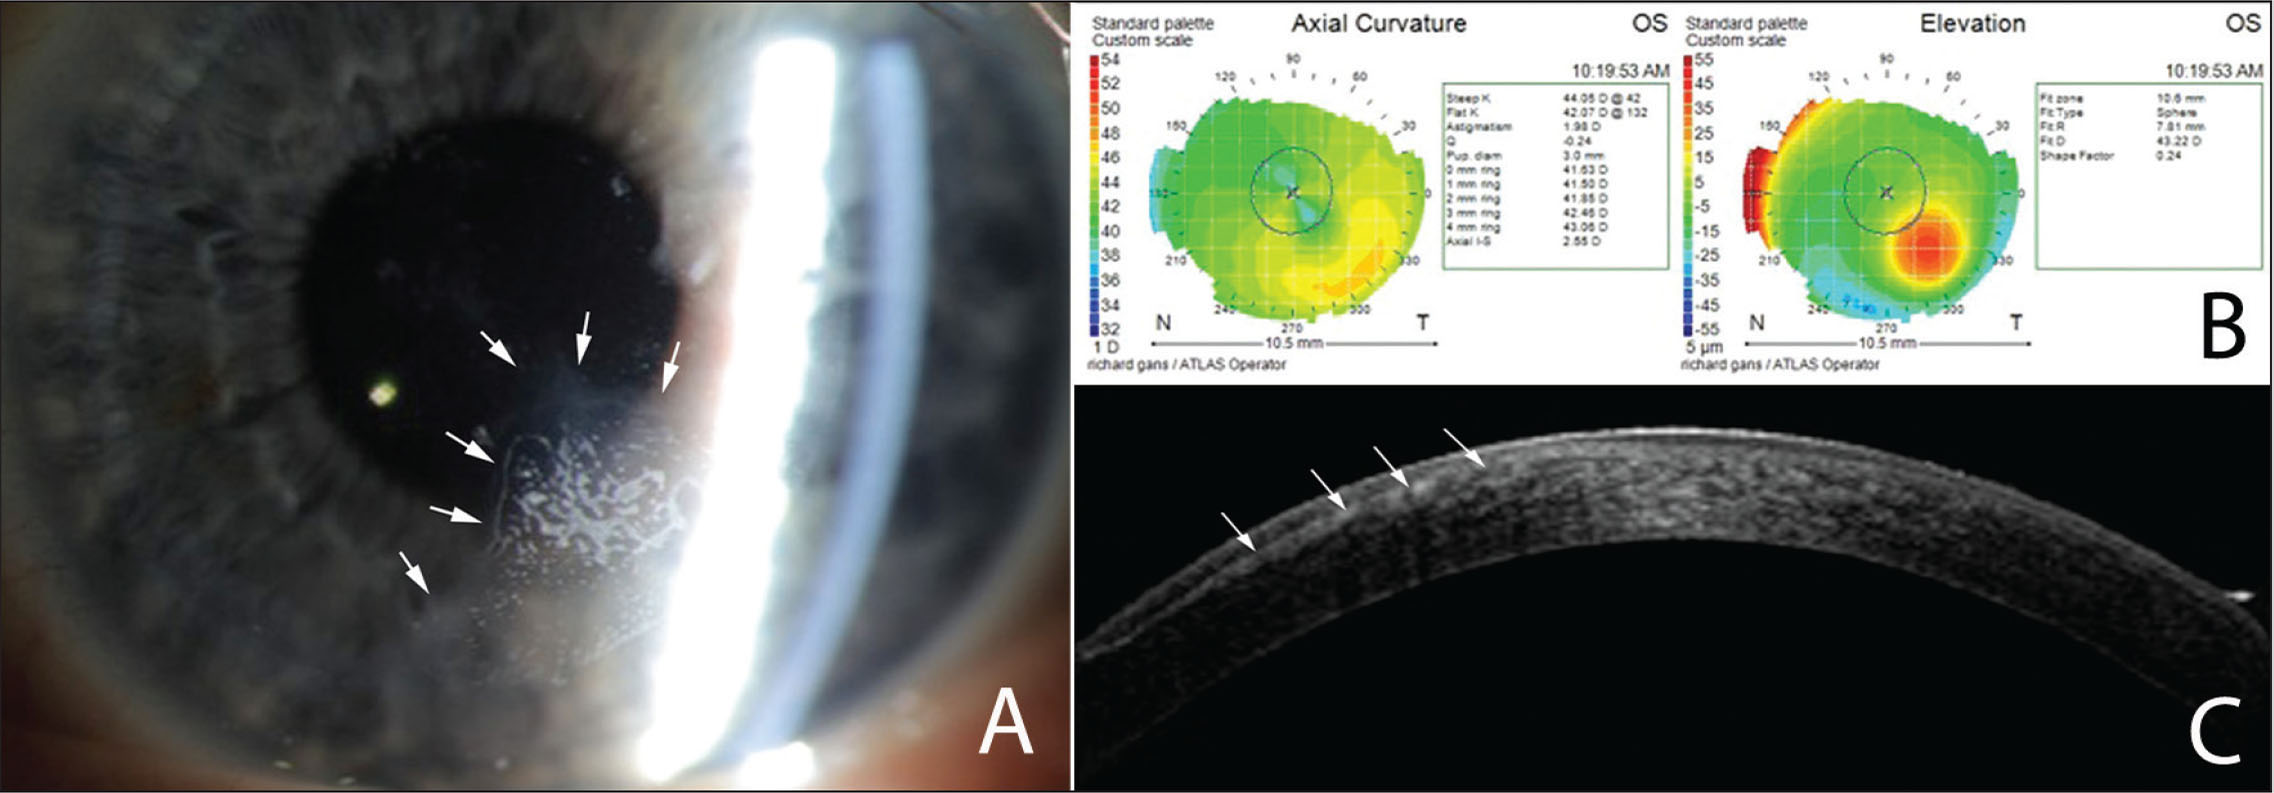 (A) Slit-lamp photograph of epithelial ingrowth (arrows) after LASIK with a mechanical microkeratome. (B) Corneal topography shows induced changes on corneal curvature and elevation that simulate ectasia. These changes disappeared after removal of the epithelial ingrowth (not shown). (C) Optical coherence tomography provided the location (arrows) of the cells between the flap and the posterior corneal stromal bed.